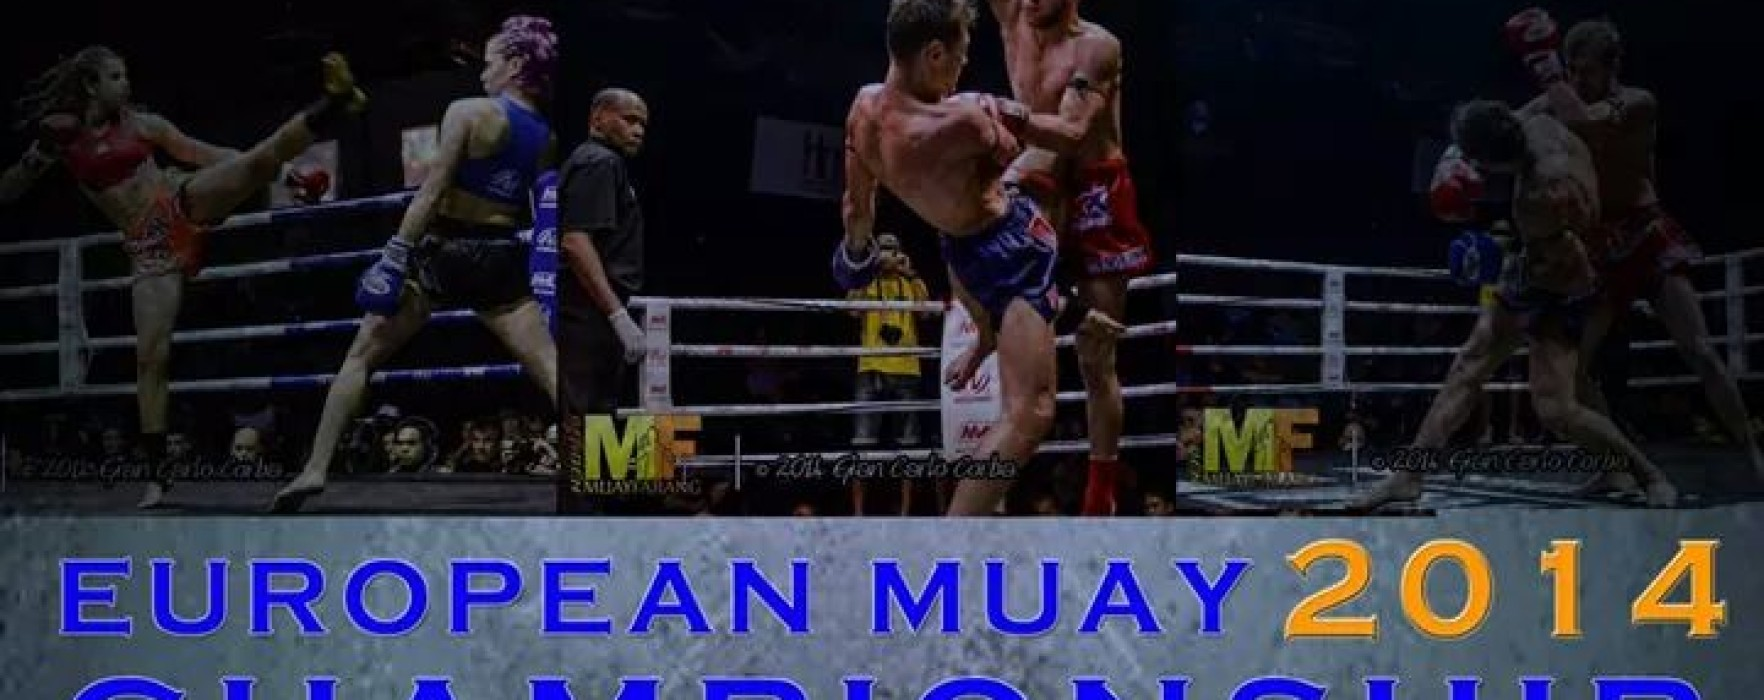 European Muay Thai Championship,19 – 28 Sep. 2014, Bucharest